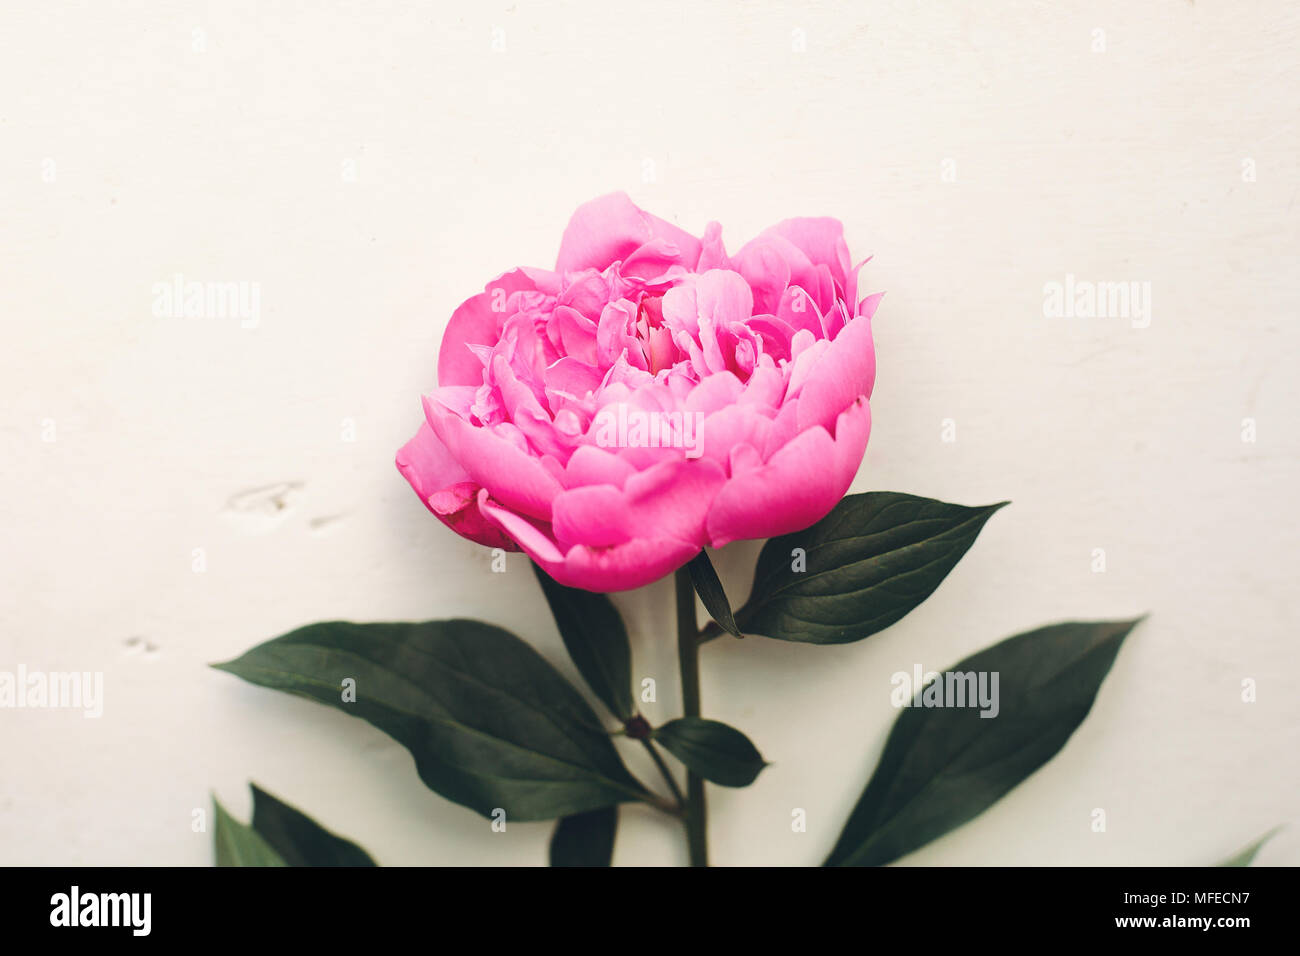 Pink Flower Aesthetic Wallpaper High Resolution Stock Photography And Images Alamy